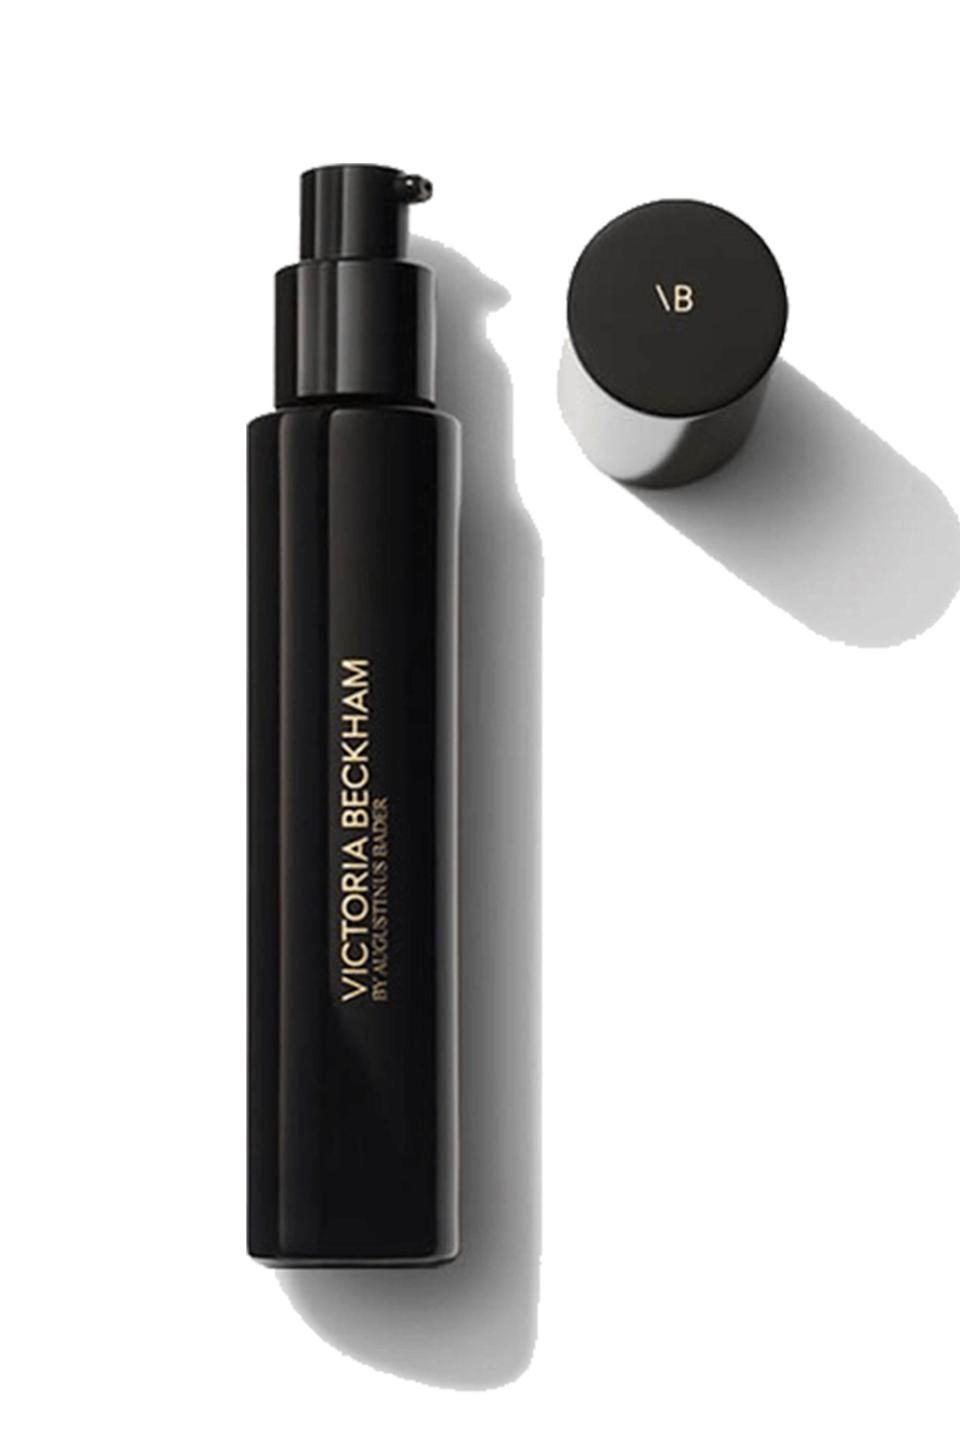 "<p><strong>Victoria Beckham Beauty </strong></p><p>victoriabeckhambeauty.com</p><p><strong>$95.00</strong></p><p><a href=""https://www.victoriabeckhambeauty.com/products/priming-moisturizer/?variant=30ml"" rel=""nofollow noopener"" target=""_blank"" data-ylk=""slk:Shop Now"" class=""link rapid-noclick-resp"">Shop Now</a></p><p>The perfect primer and all-natural moisturizer in one Posh Spice-approved product! The formula, created by Augustinus Bader, contains black tea, enzymes, algae, and avocado oil to create a smooth canvas for makeup application.</p>"